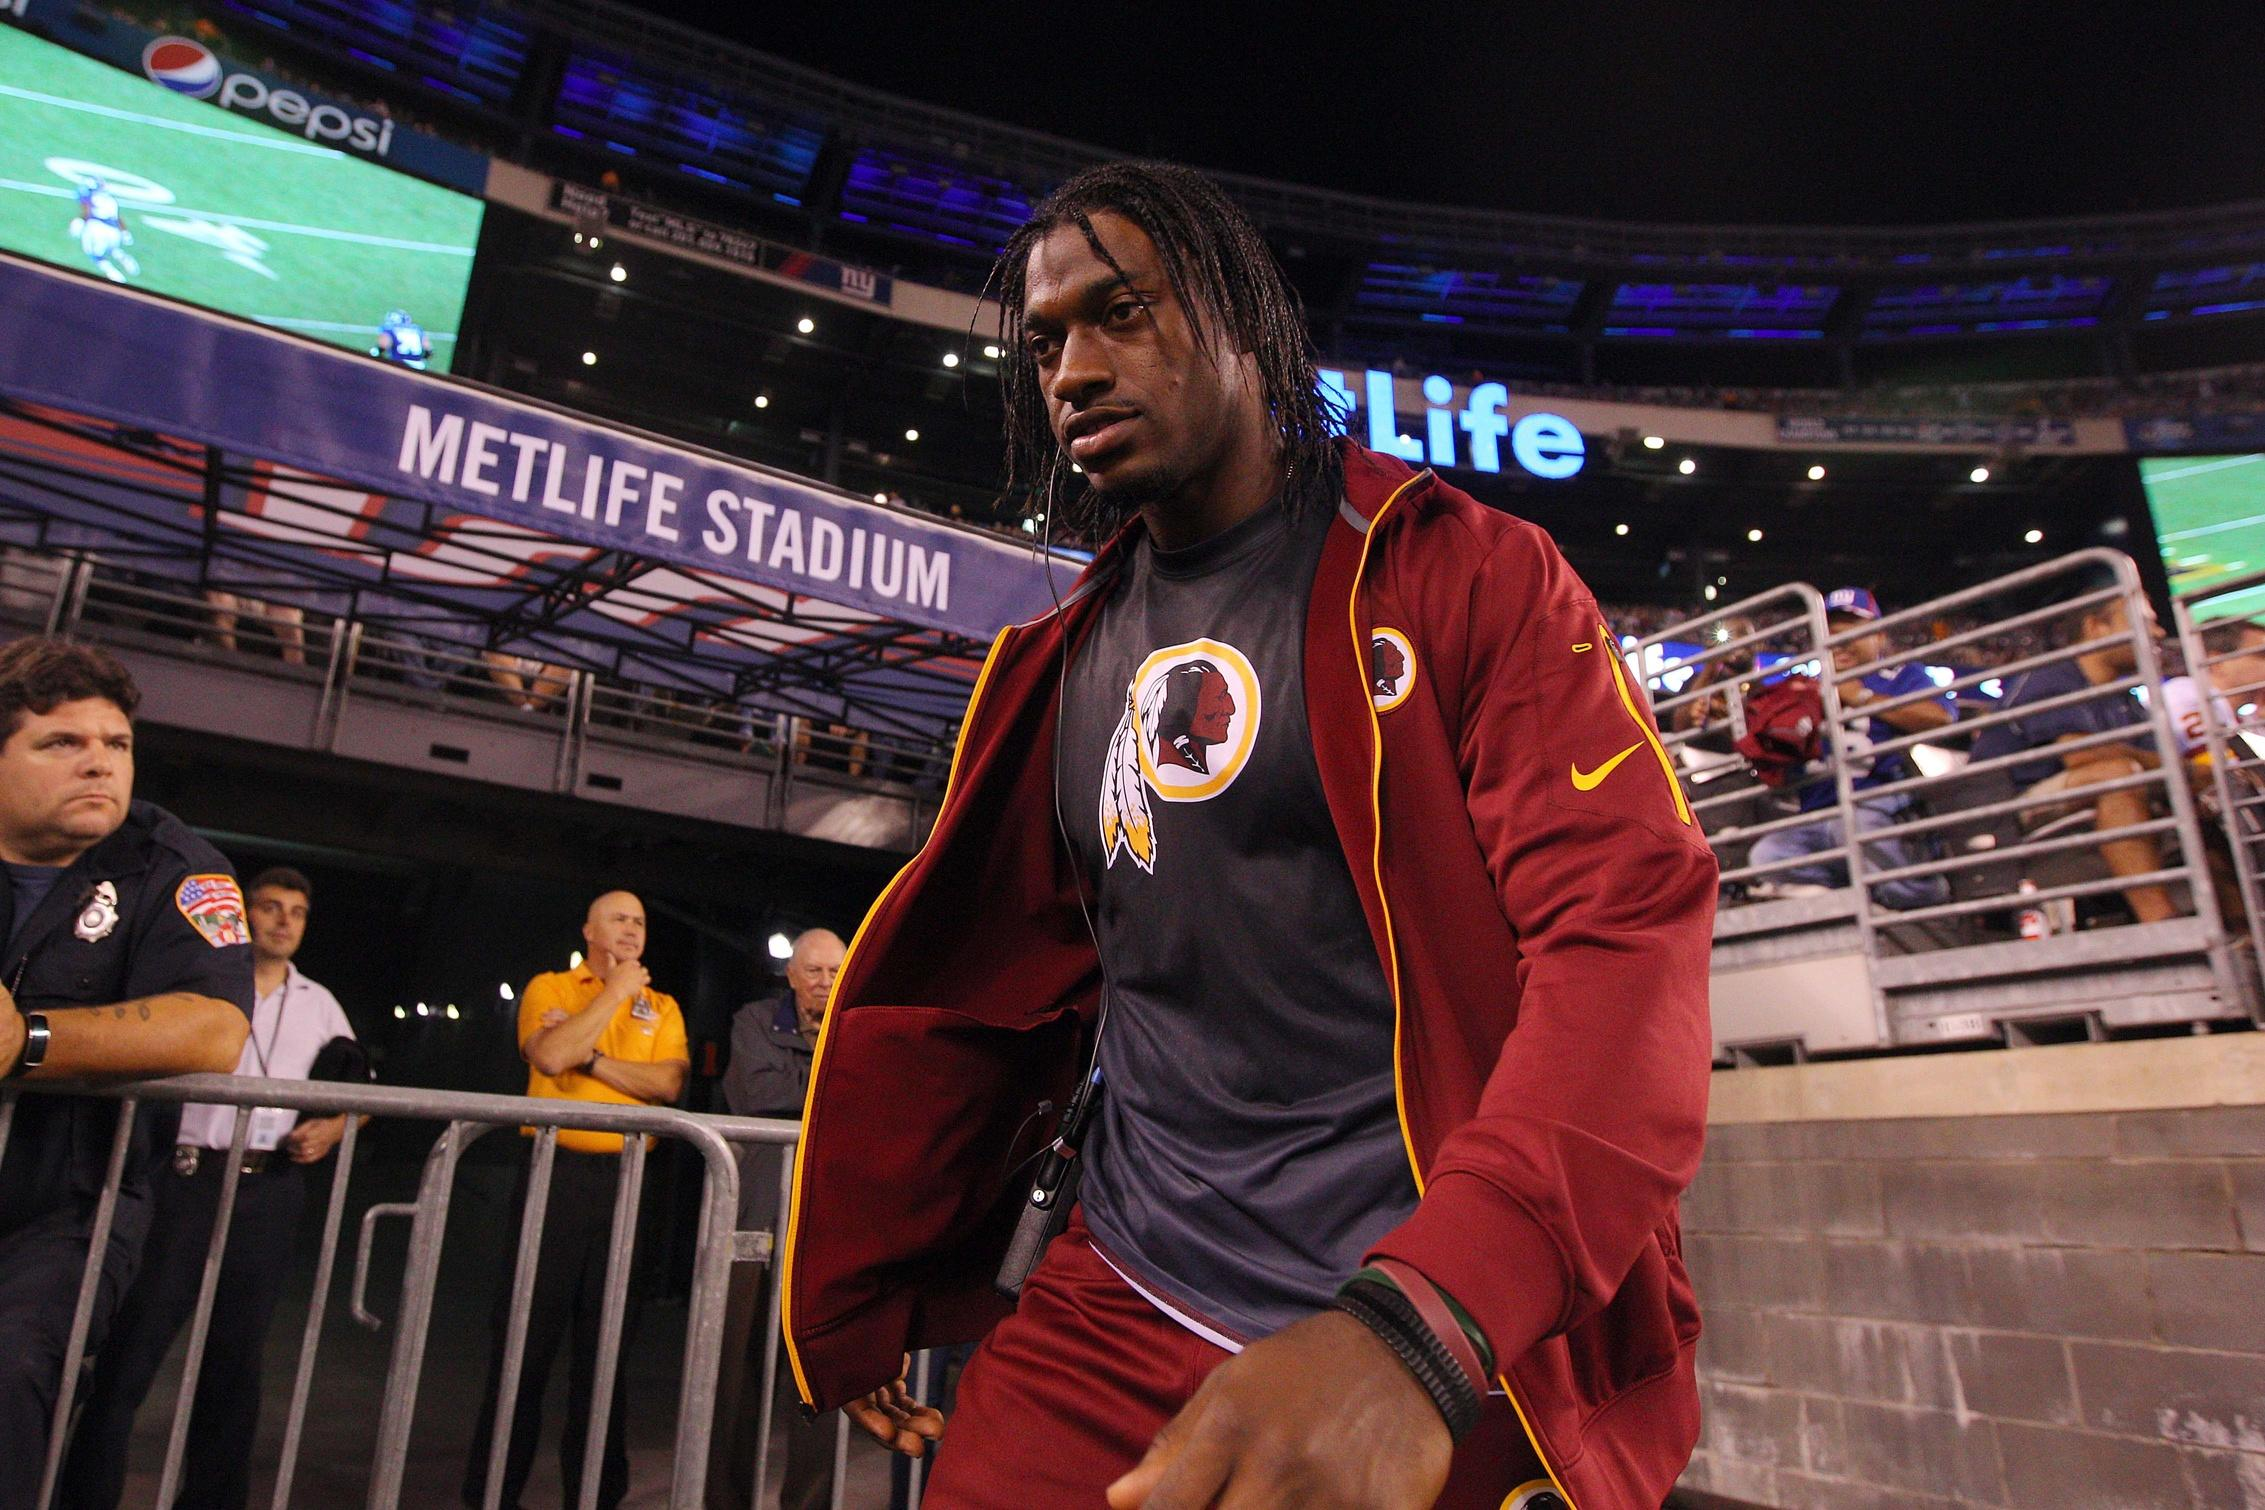 Robert Griffin III's Statue At Baylor Vandalized, Rival Fans Suspected